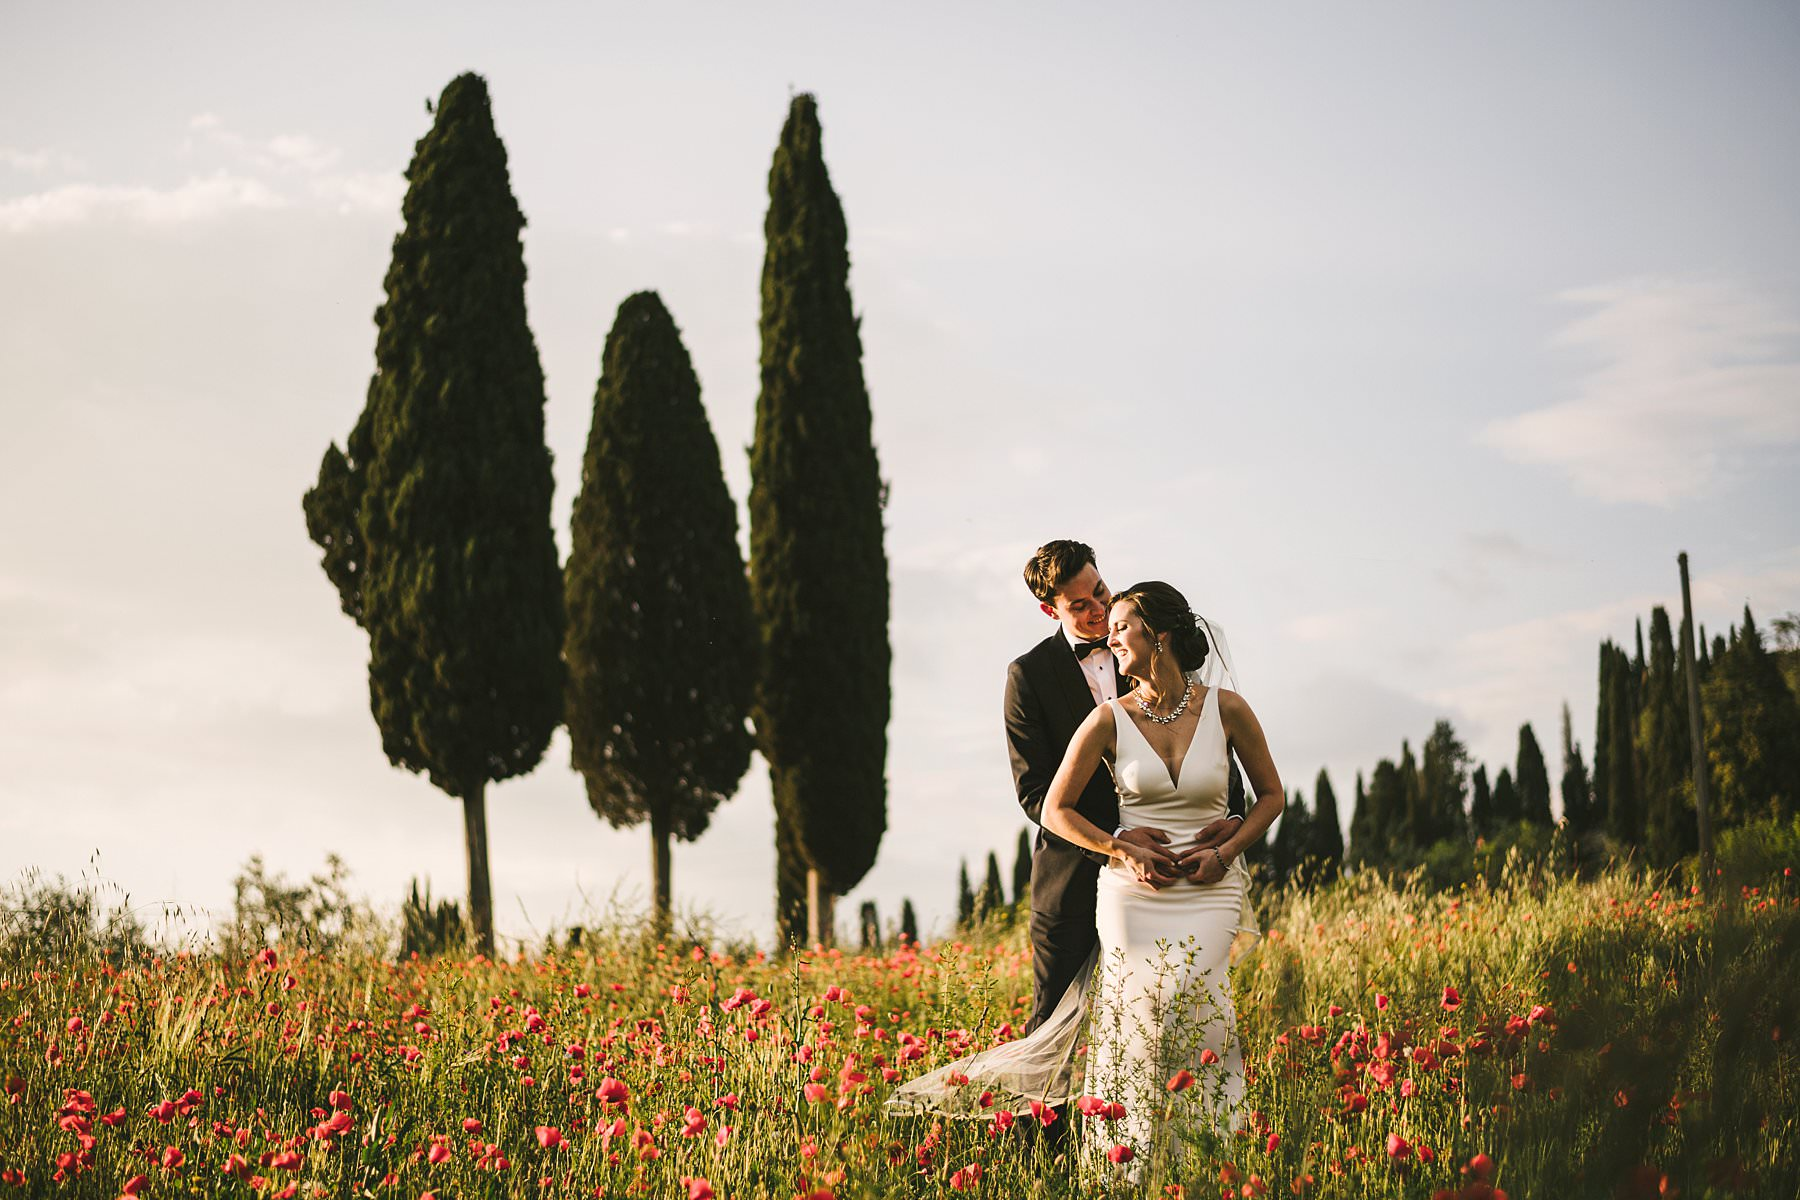 Heartfelt small wedding in the countryside of Tuscany. Every soon-to-be bride and groom have dreams about their big day: it might be a dress that makes her feel like a princess or a castle where to hold a big celebration. Katrina and John's dream was to have a small wedding in Tuscany and a photoshoot that could picture them surrounded by all of the beauty of Valdarno at Palazzo Vanneschi Villa Cini, a stone building from the 17th century immersed in a luxuriant park